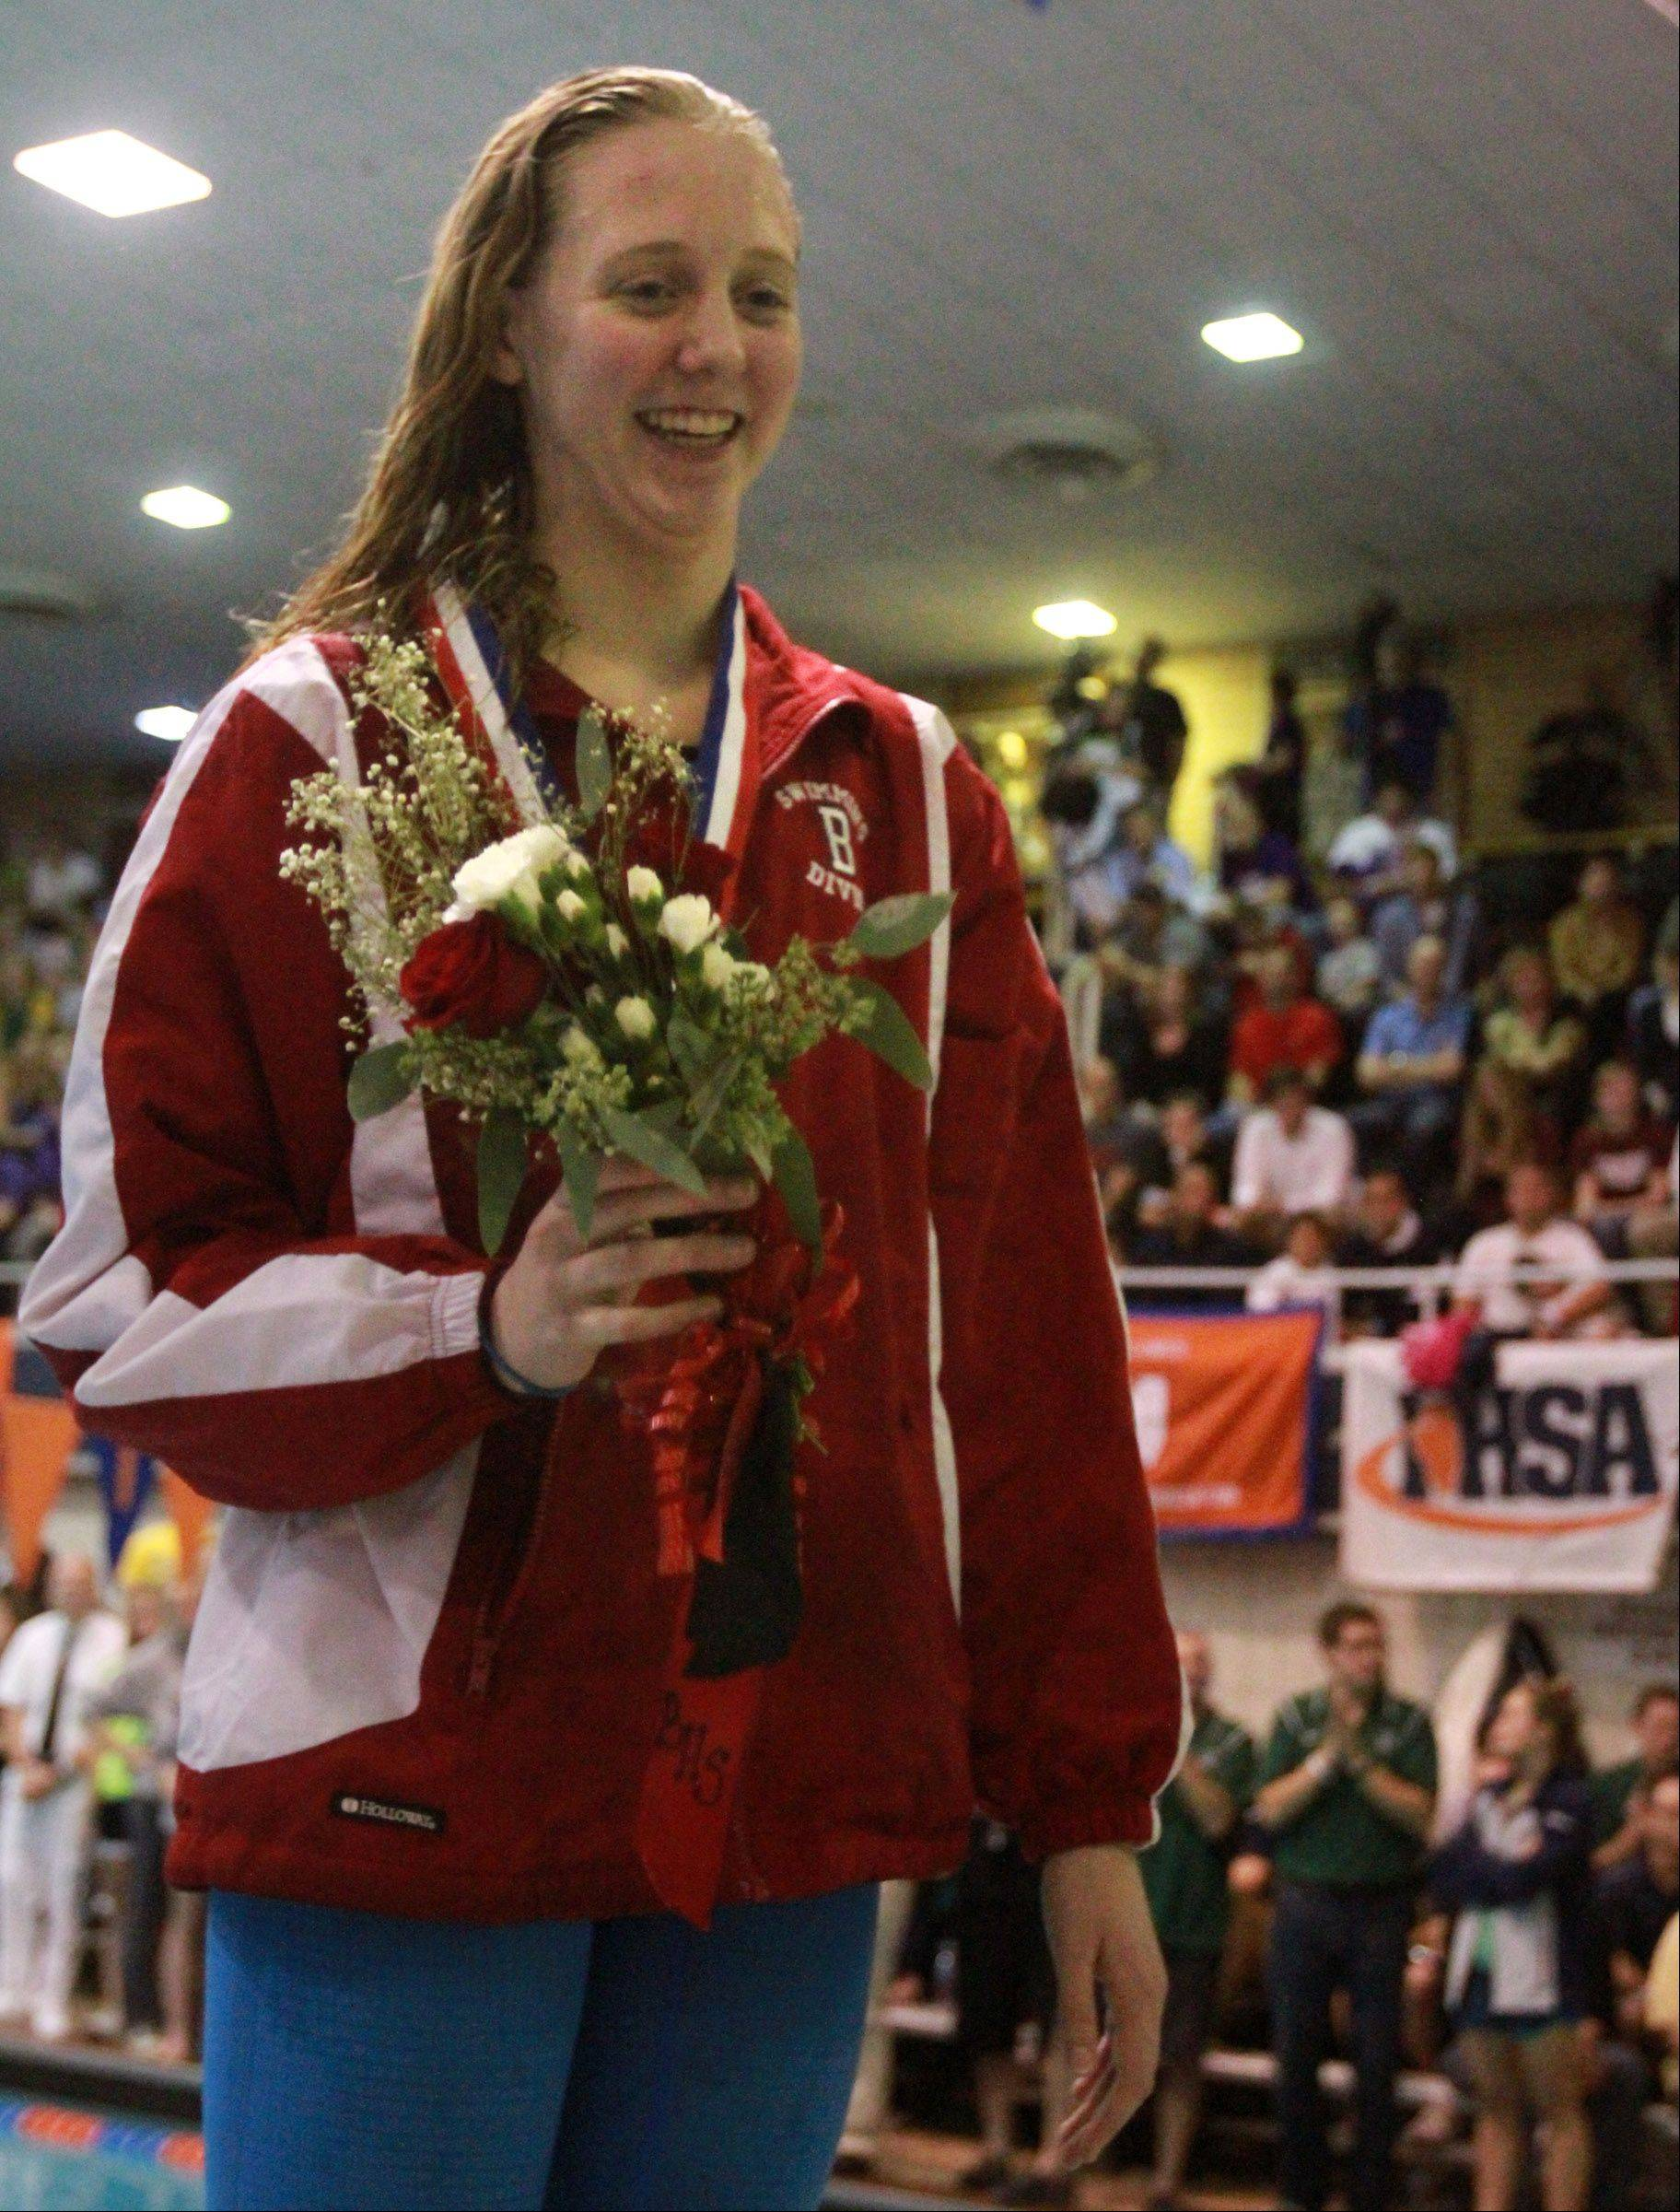 Barrington's Kirsten Jacobsen placed third in the 200-yard freestyle at the IHSA state championships in Evanston on Saturday.